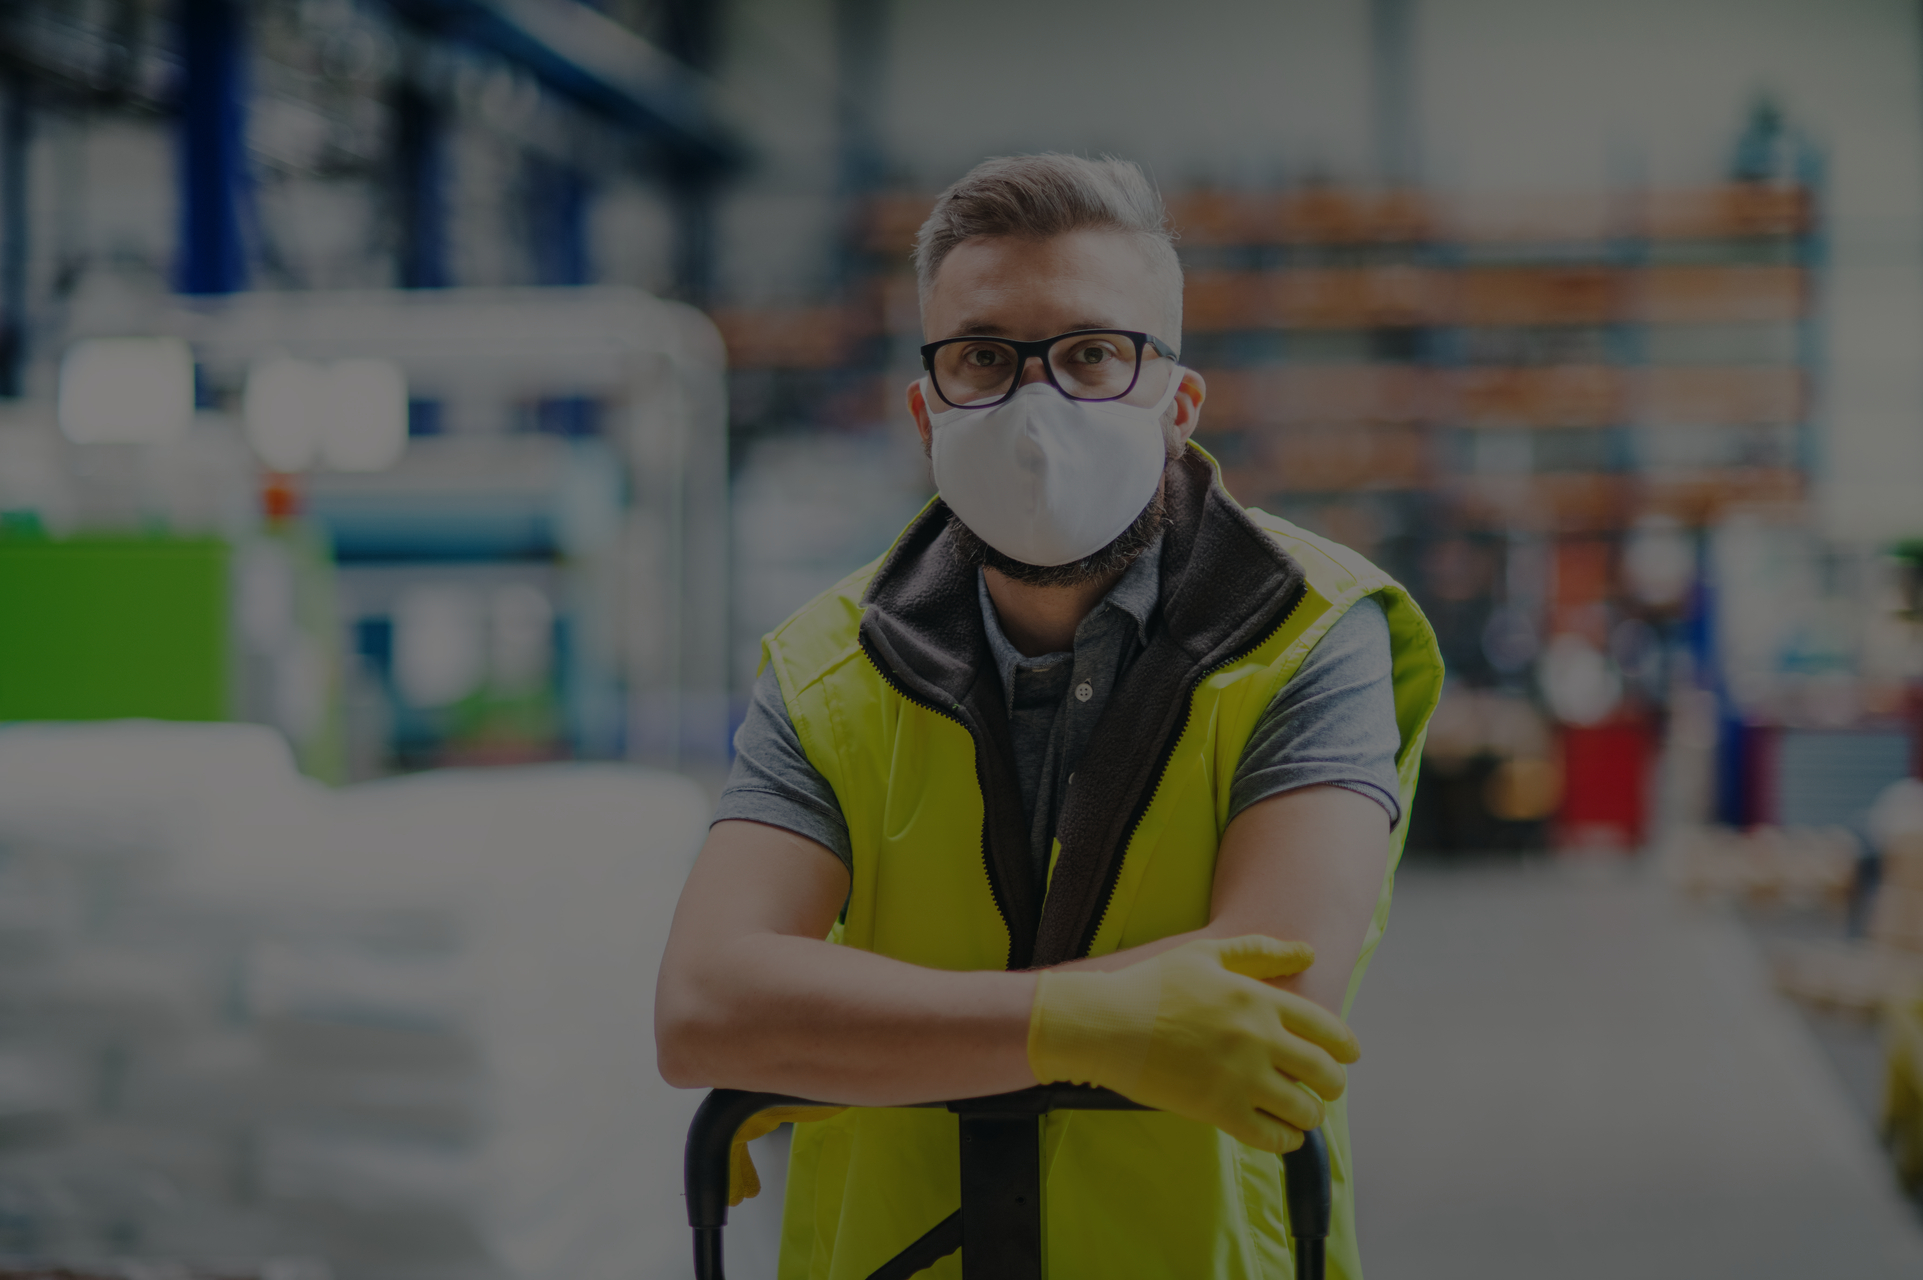 Southalls_health and safety compliance check_covid19